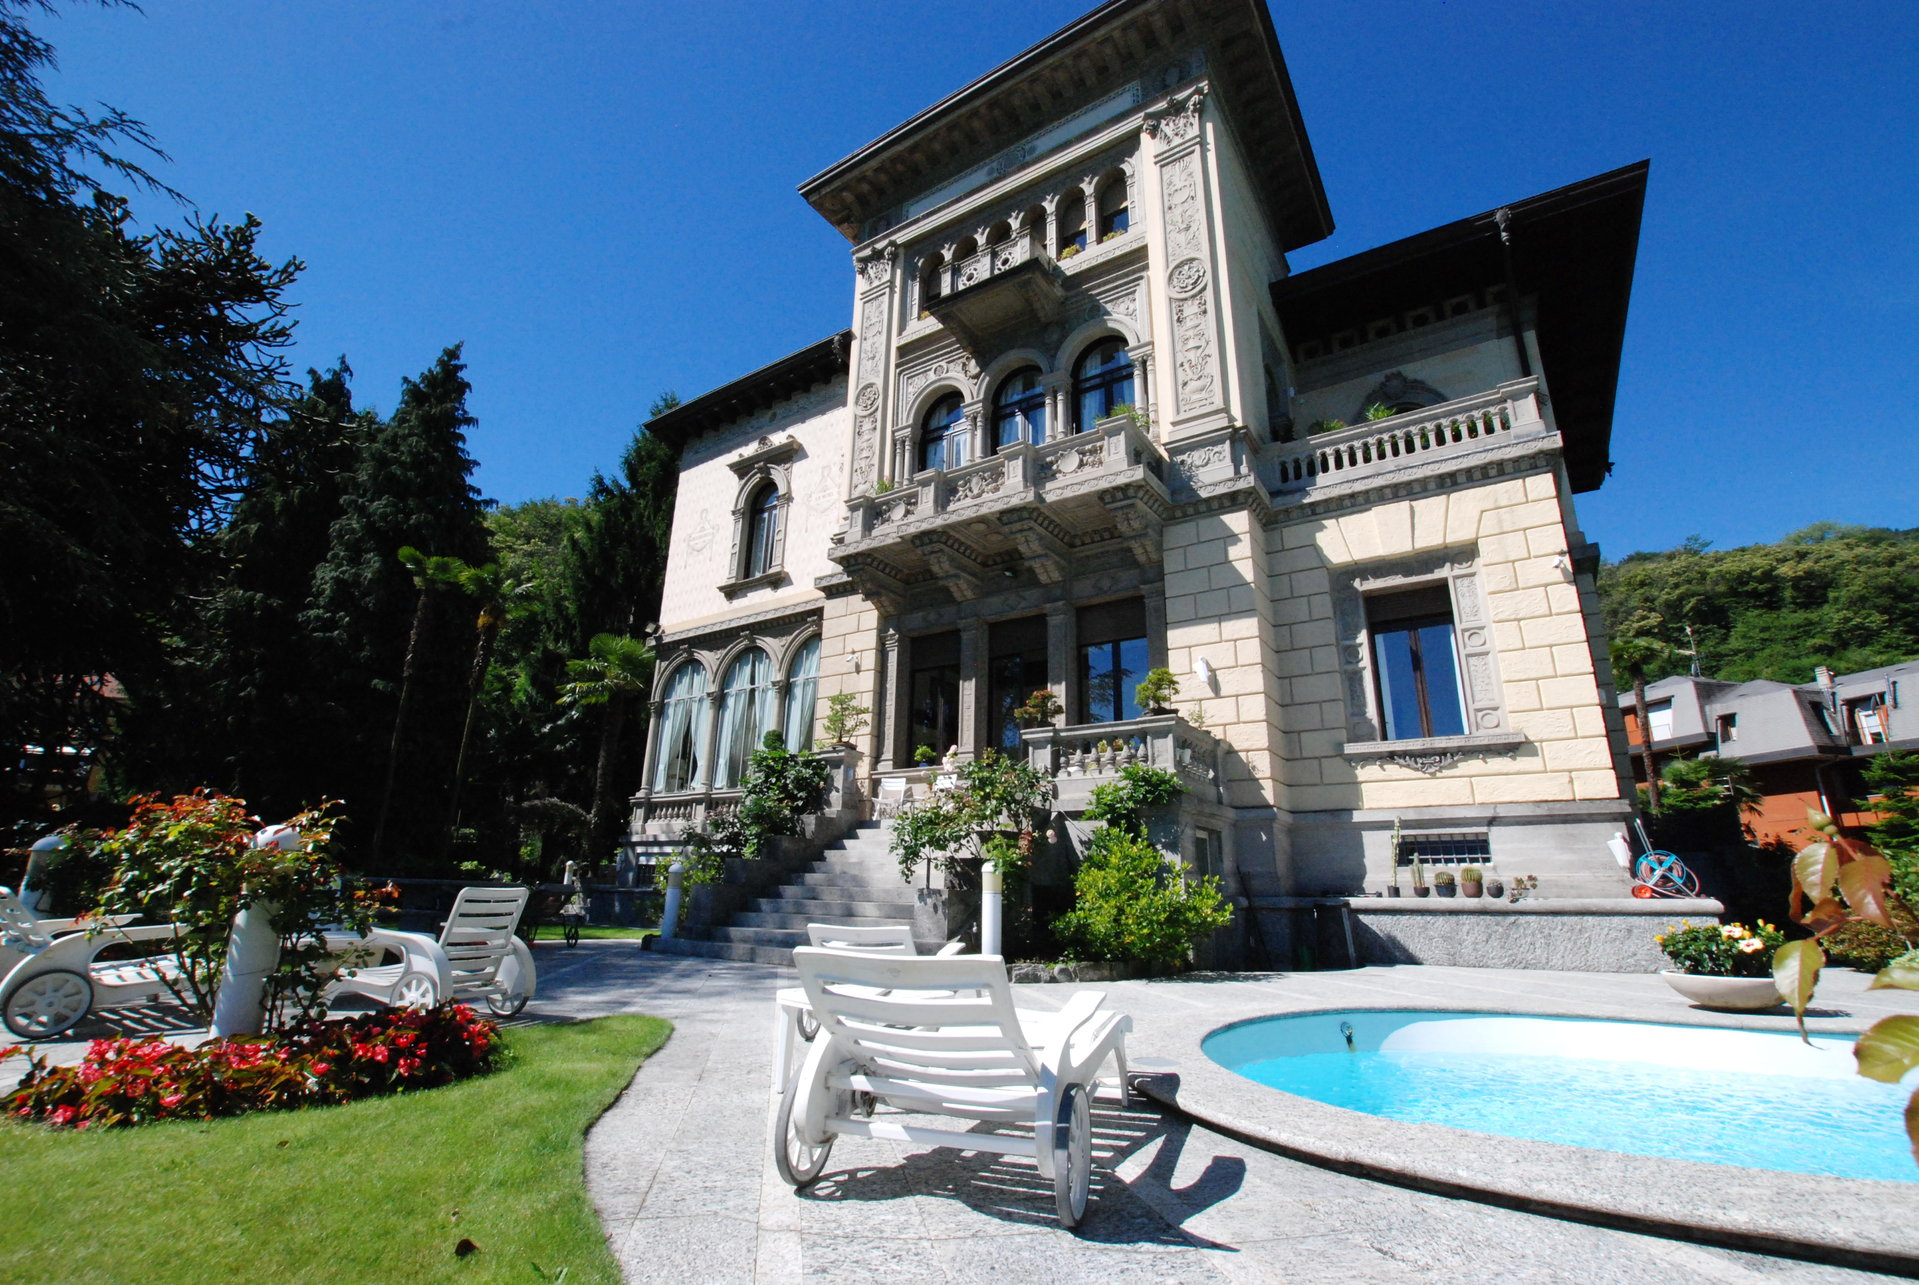 Luxurious apartment for sale in a villa in Stresa - building with swimming pool